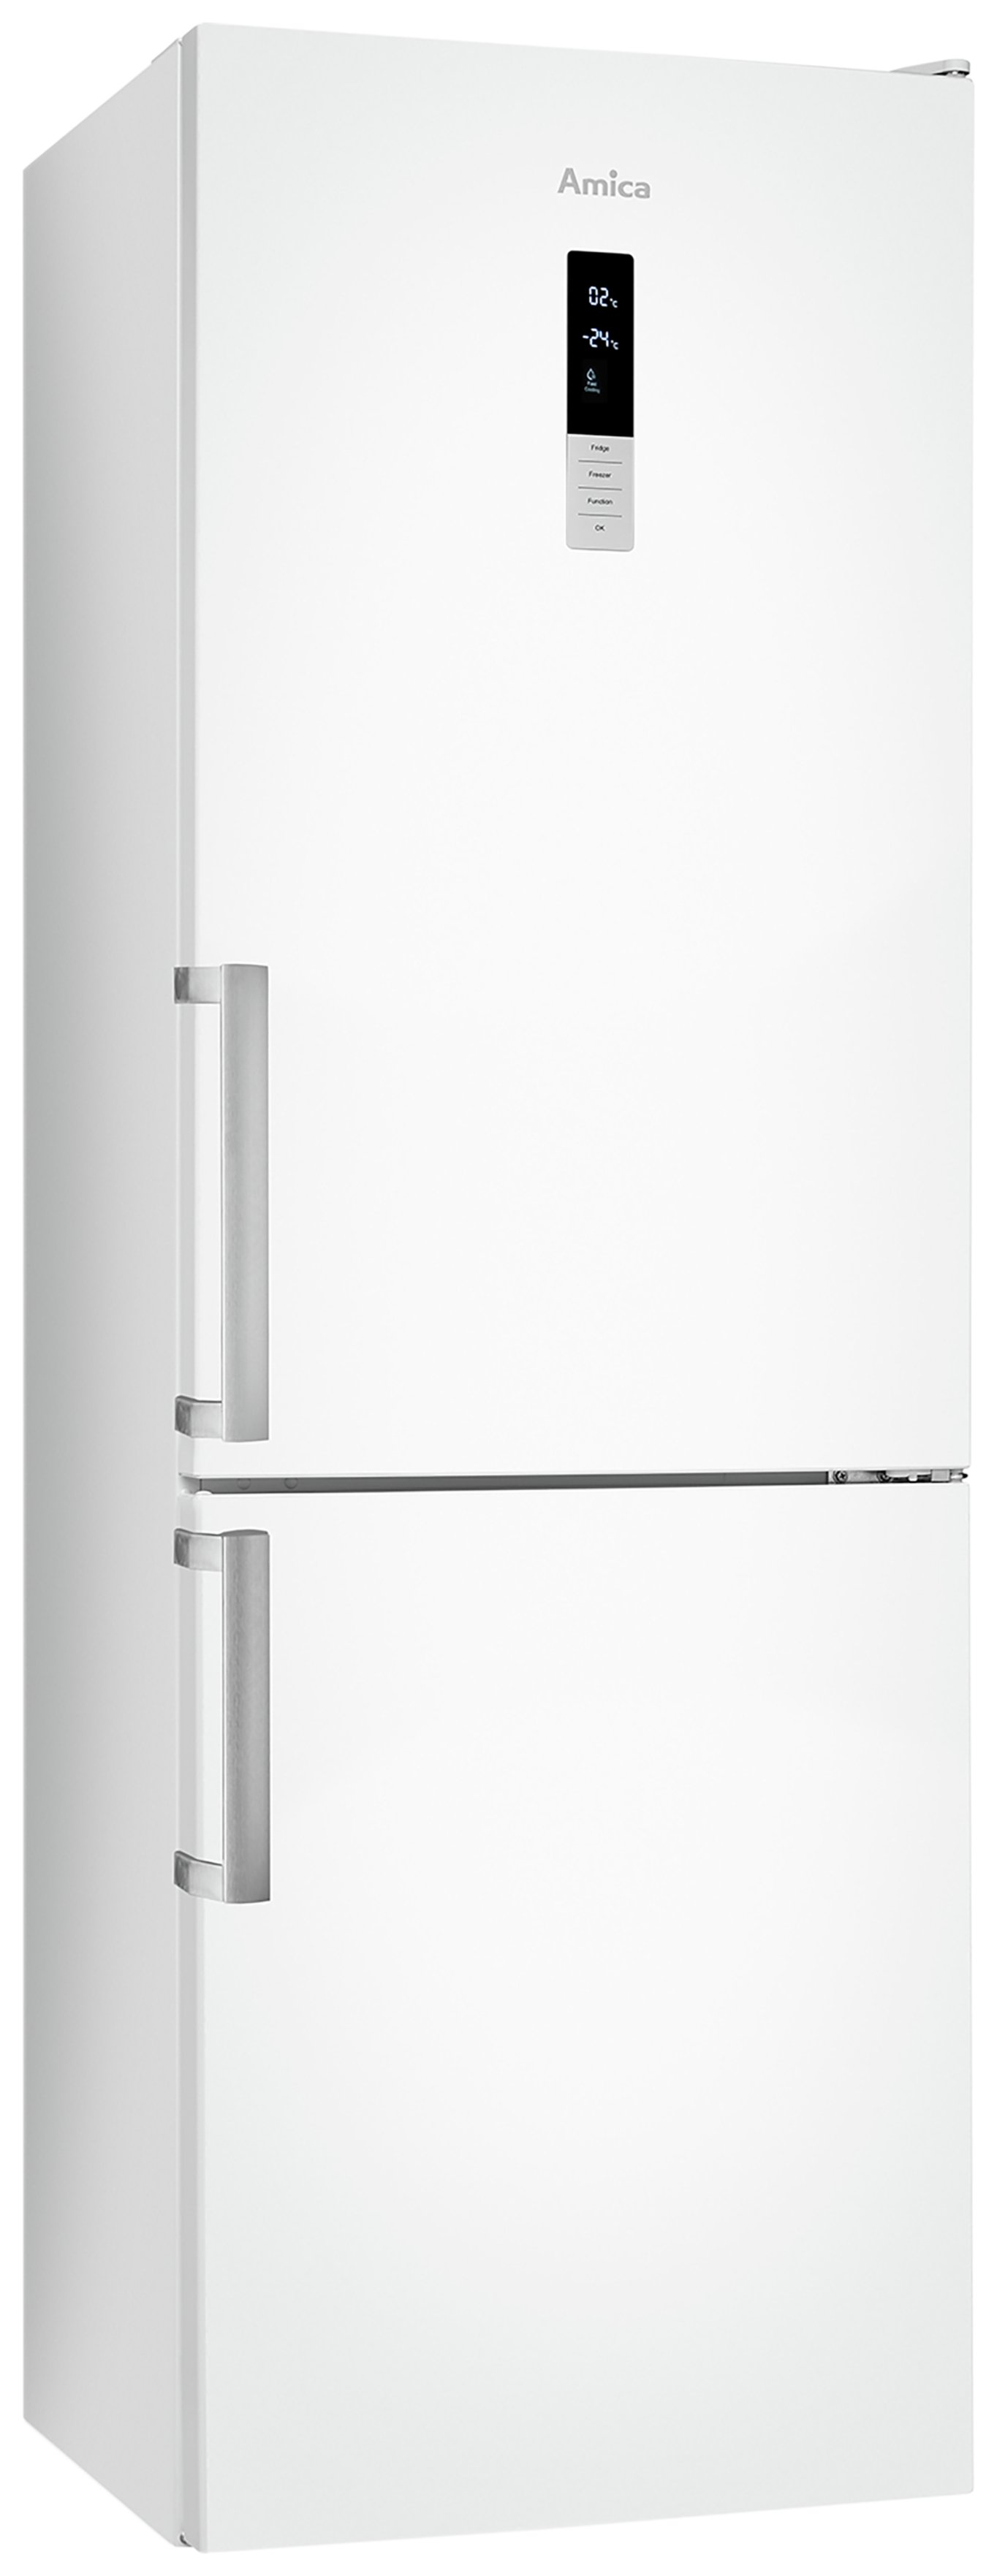 Amica FK3213DF Frost Free Tall Fridge Freezer - White